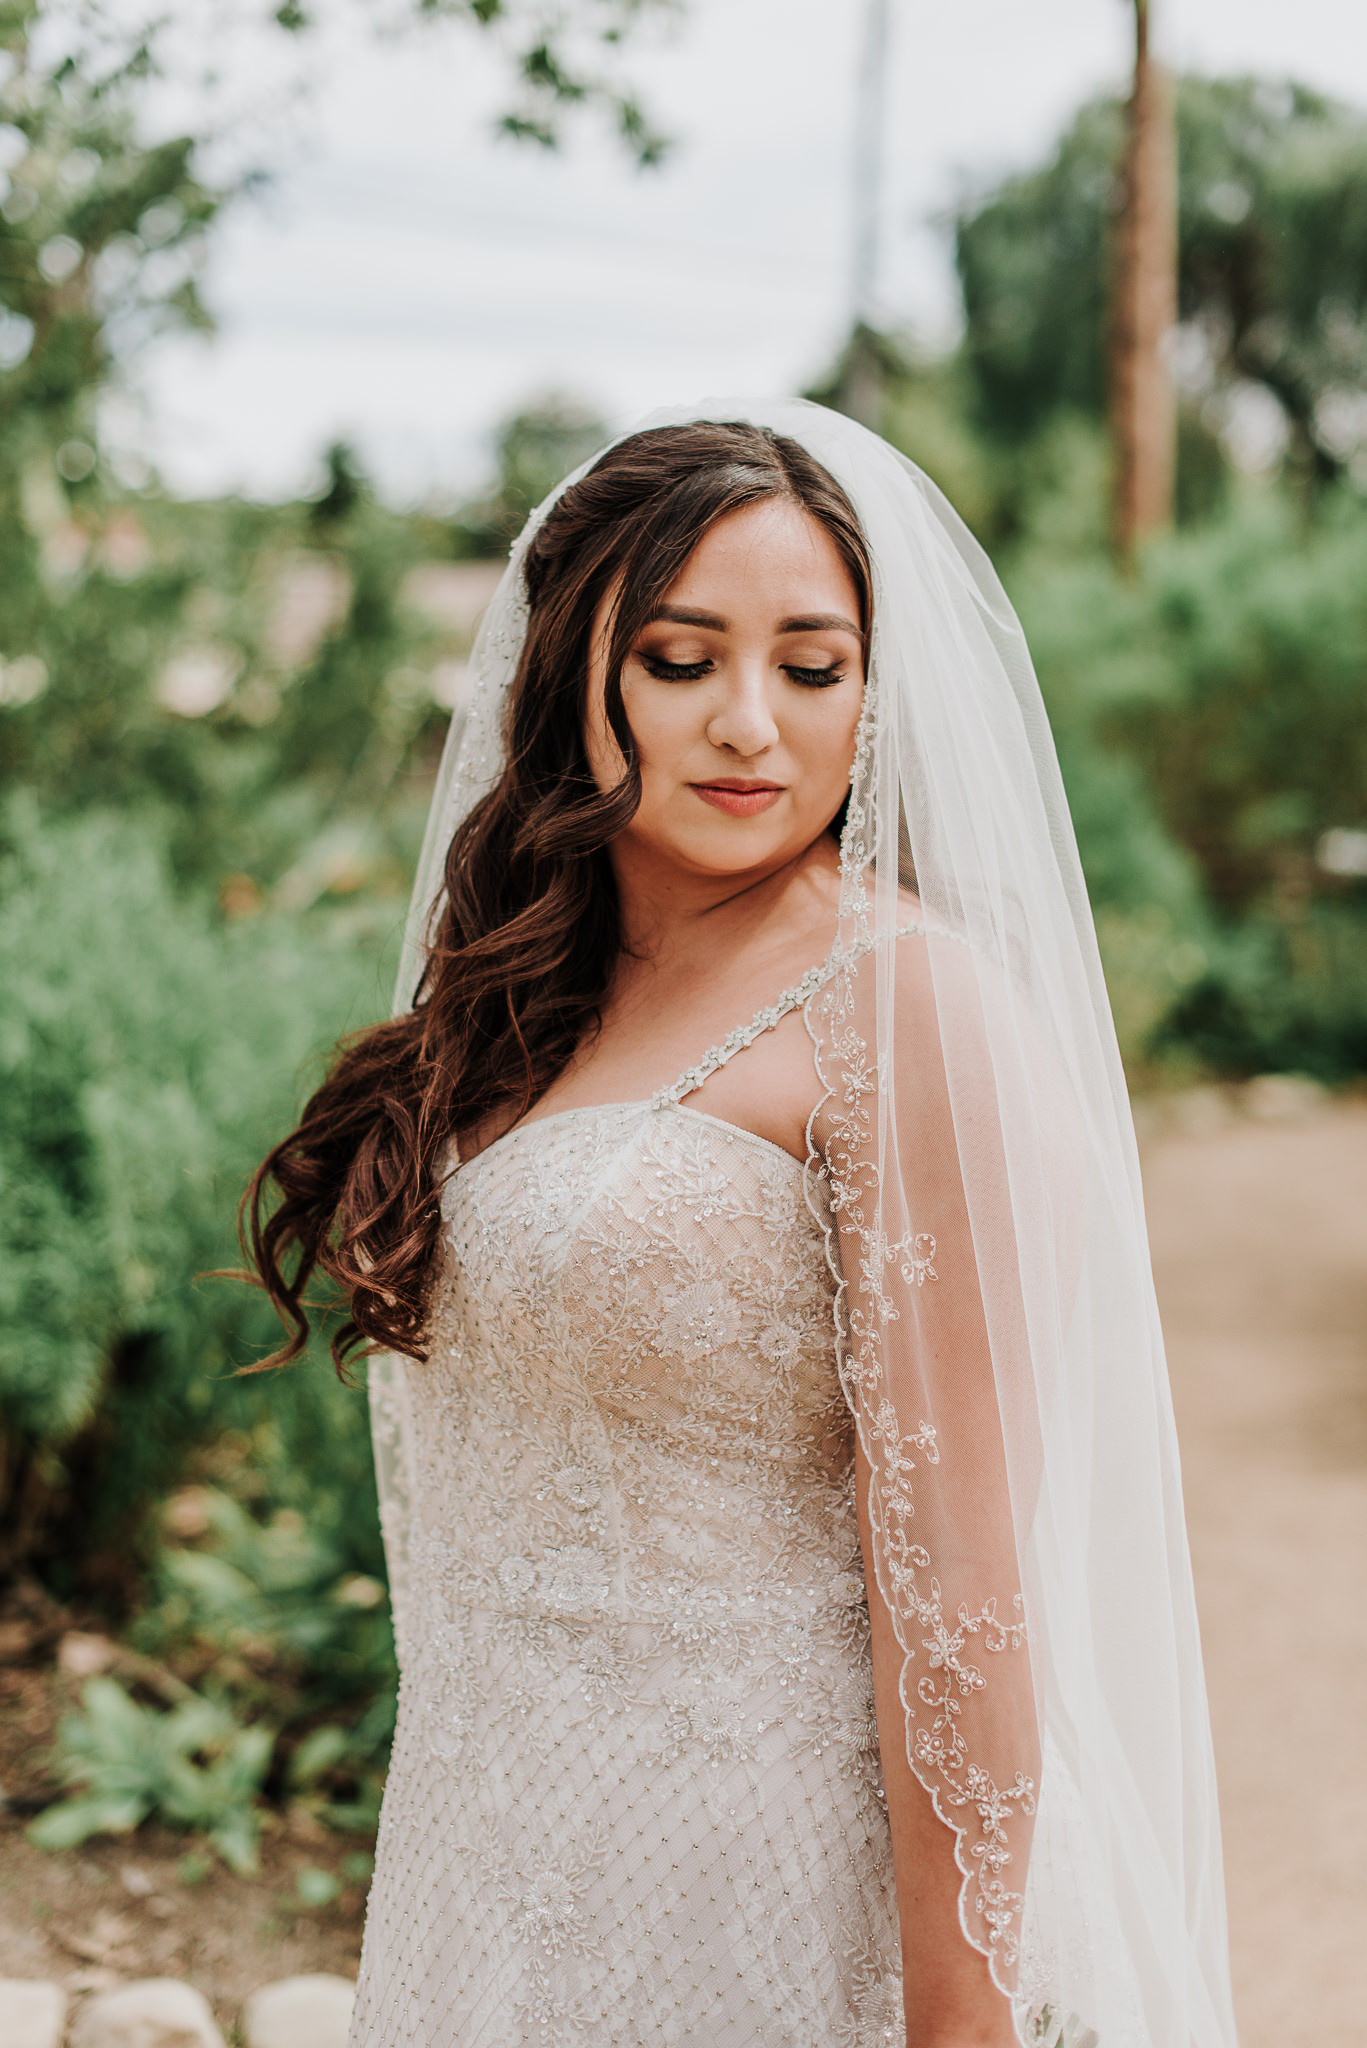 2019-04-05_Brittany_and_Nick_-_Married_-_San_Juan_Capistrano-42.jpg